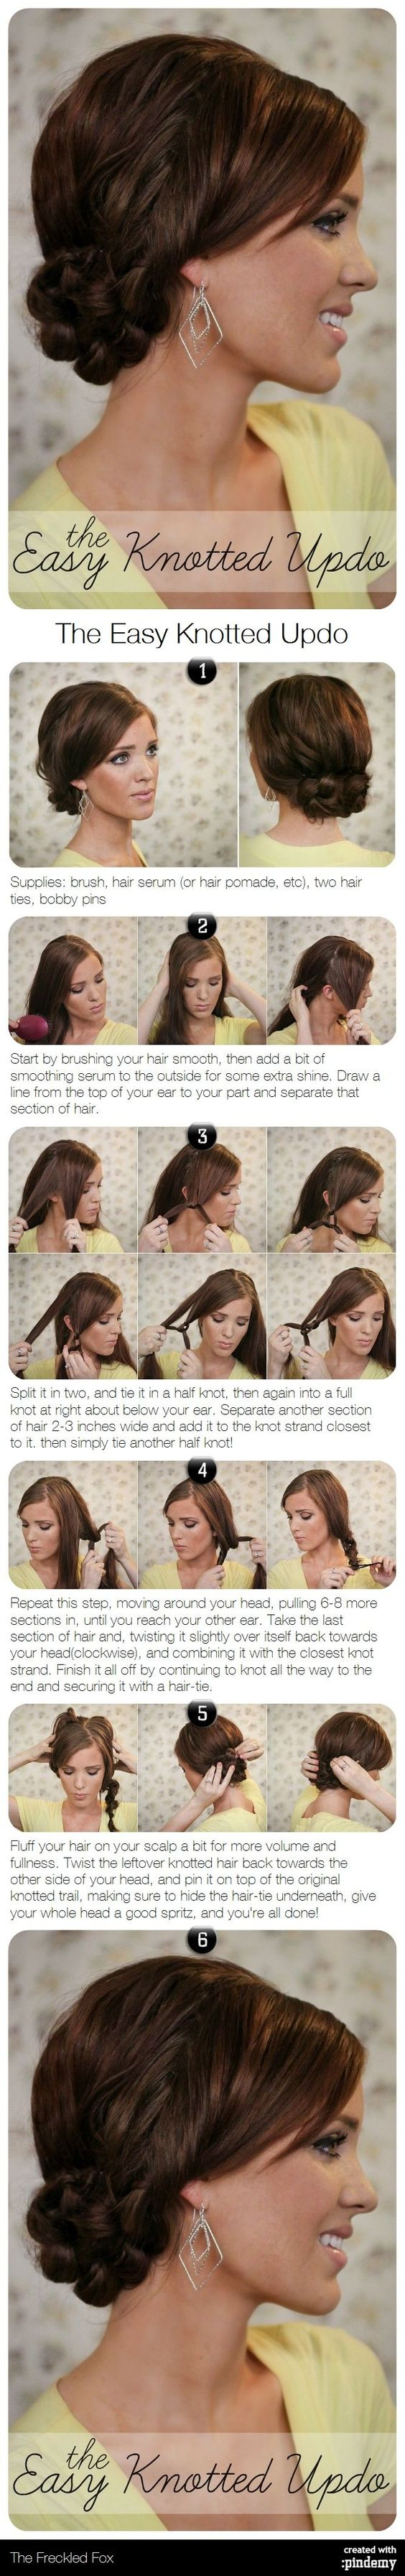 The best images about hair tips on pinterest hair hacks my